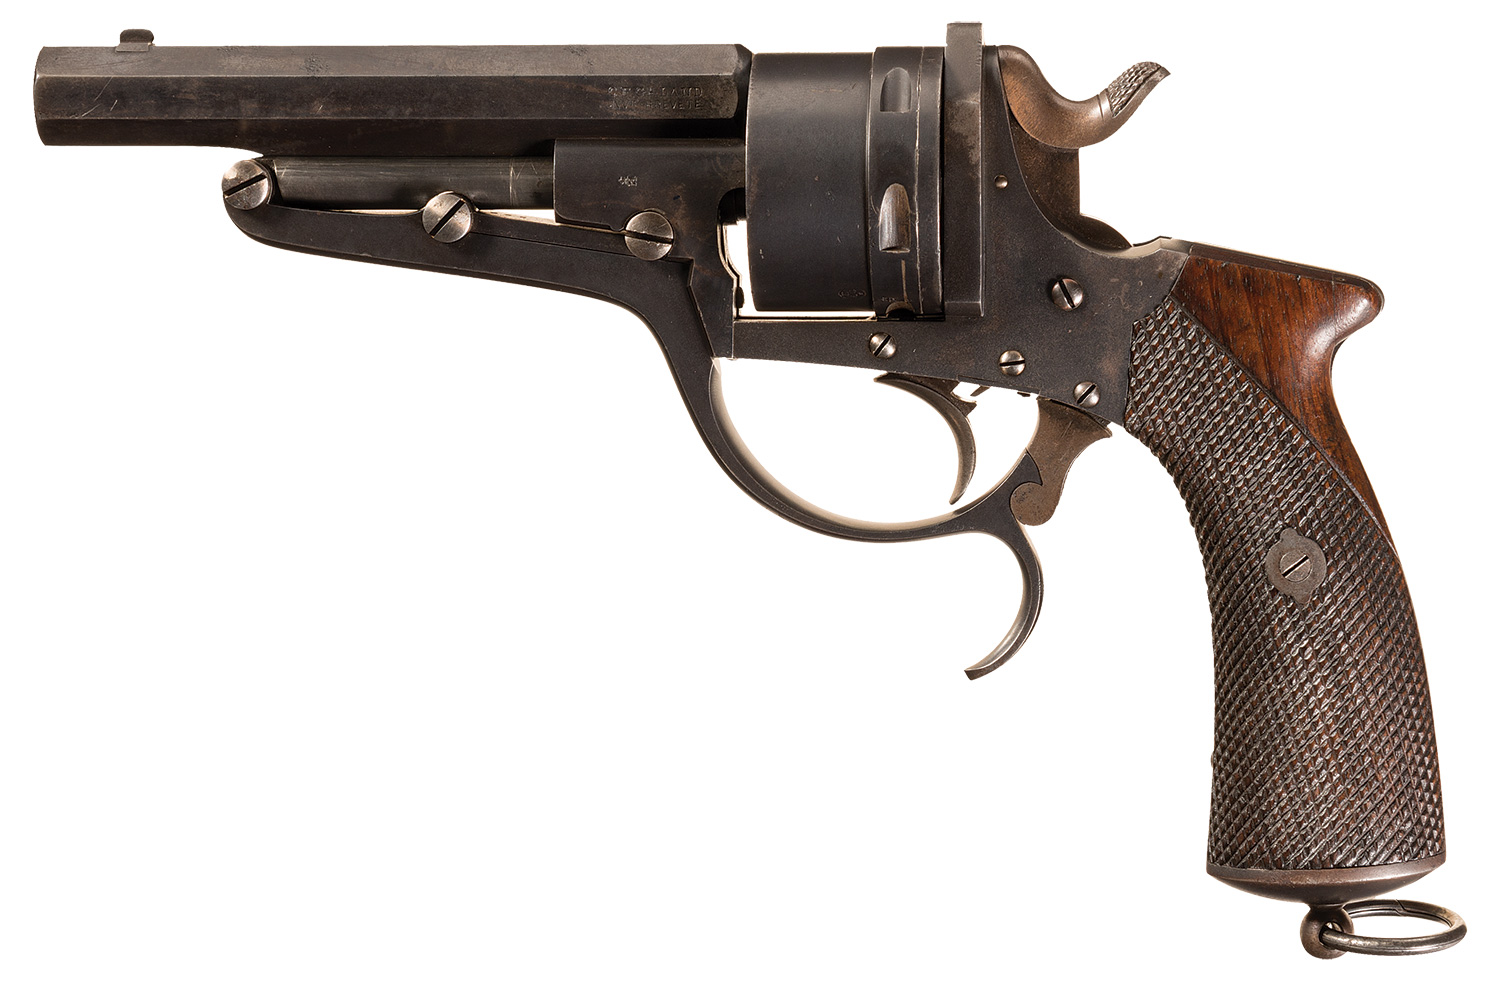 Galand Revolver Russian contract